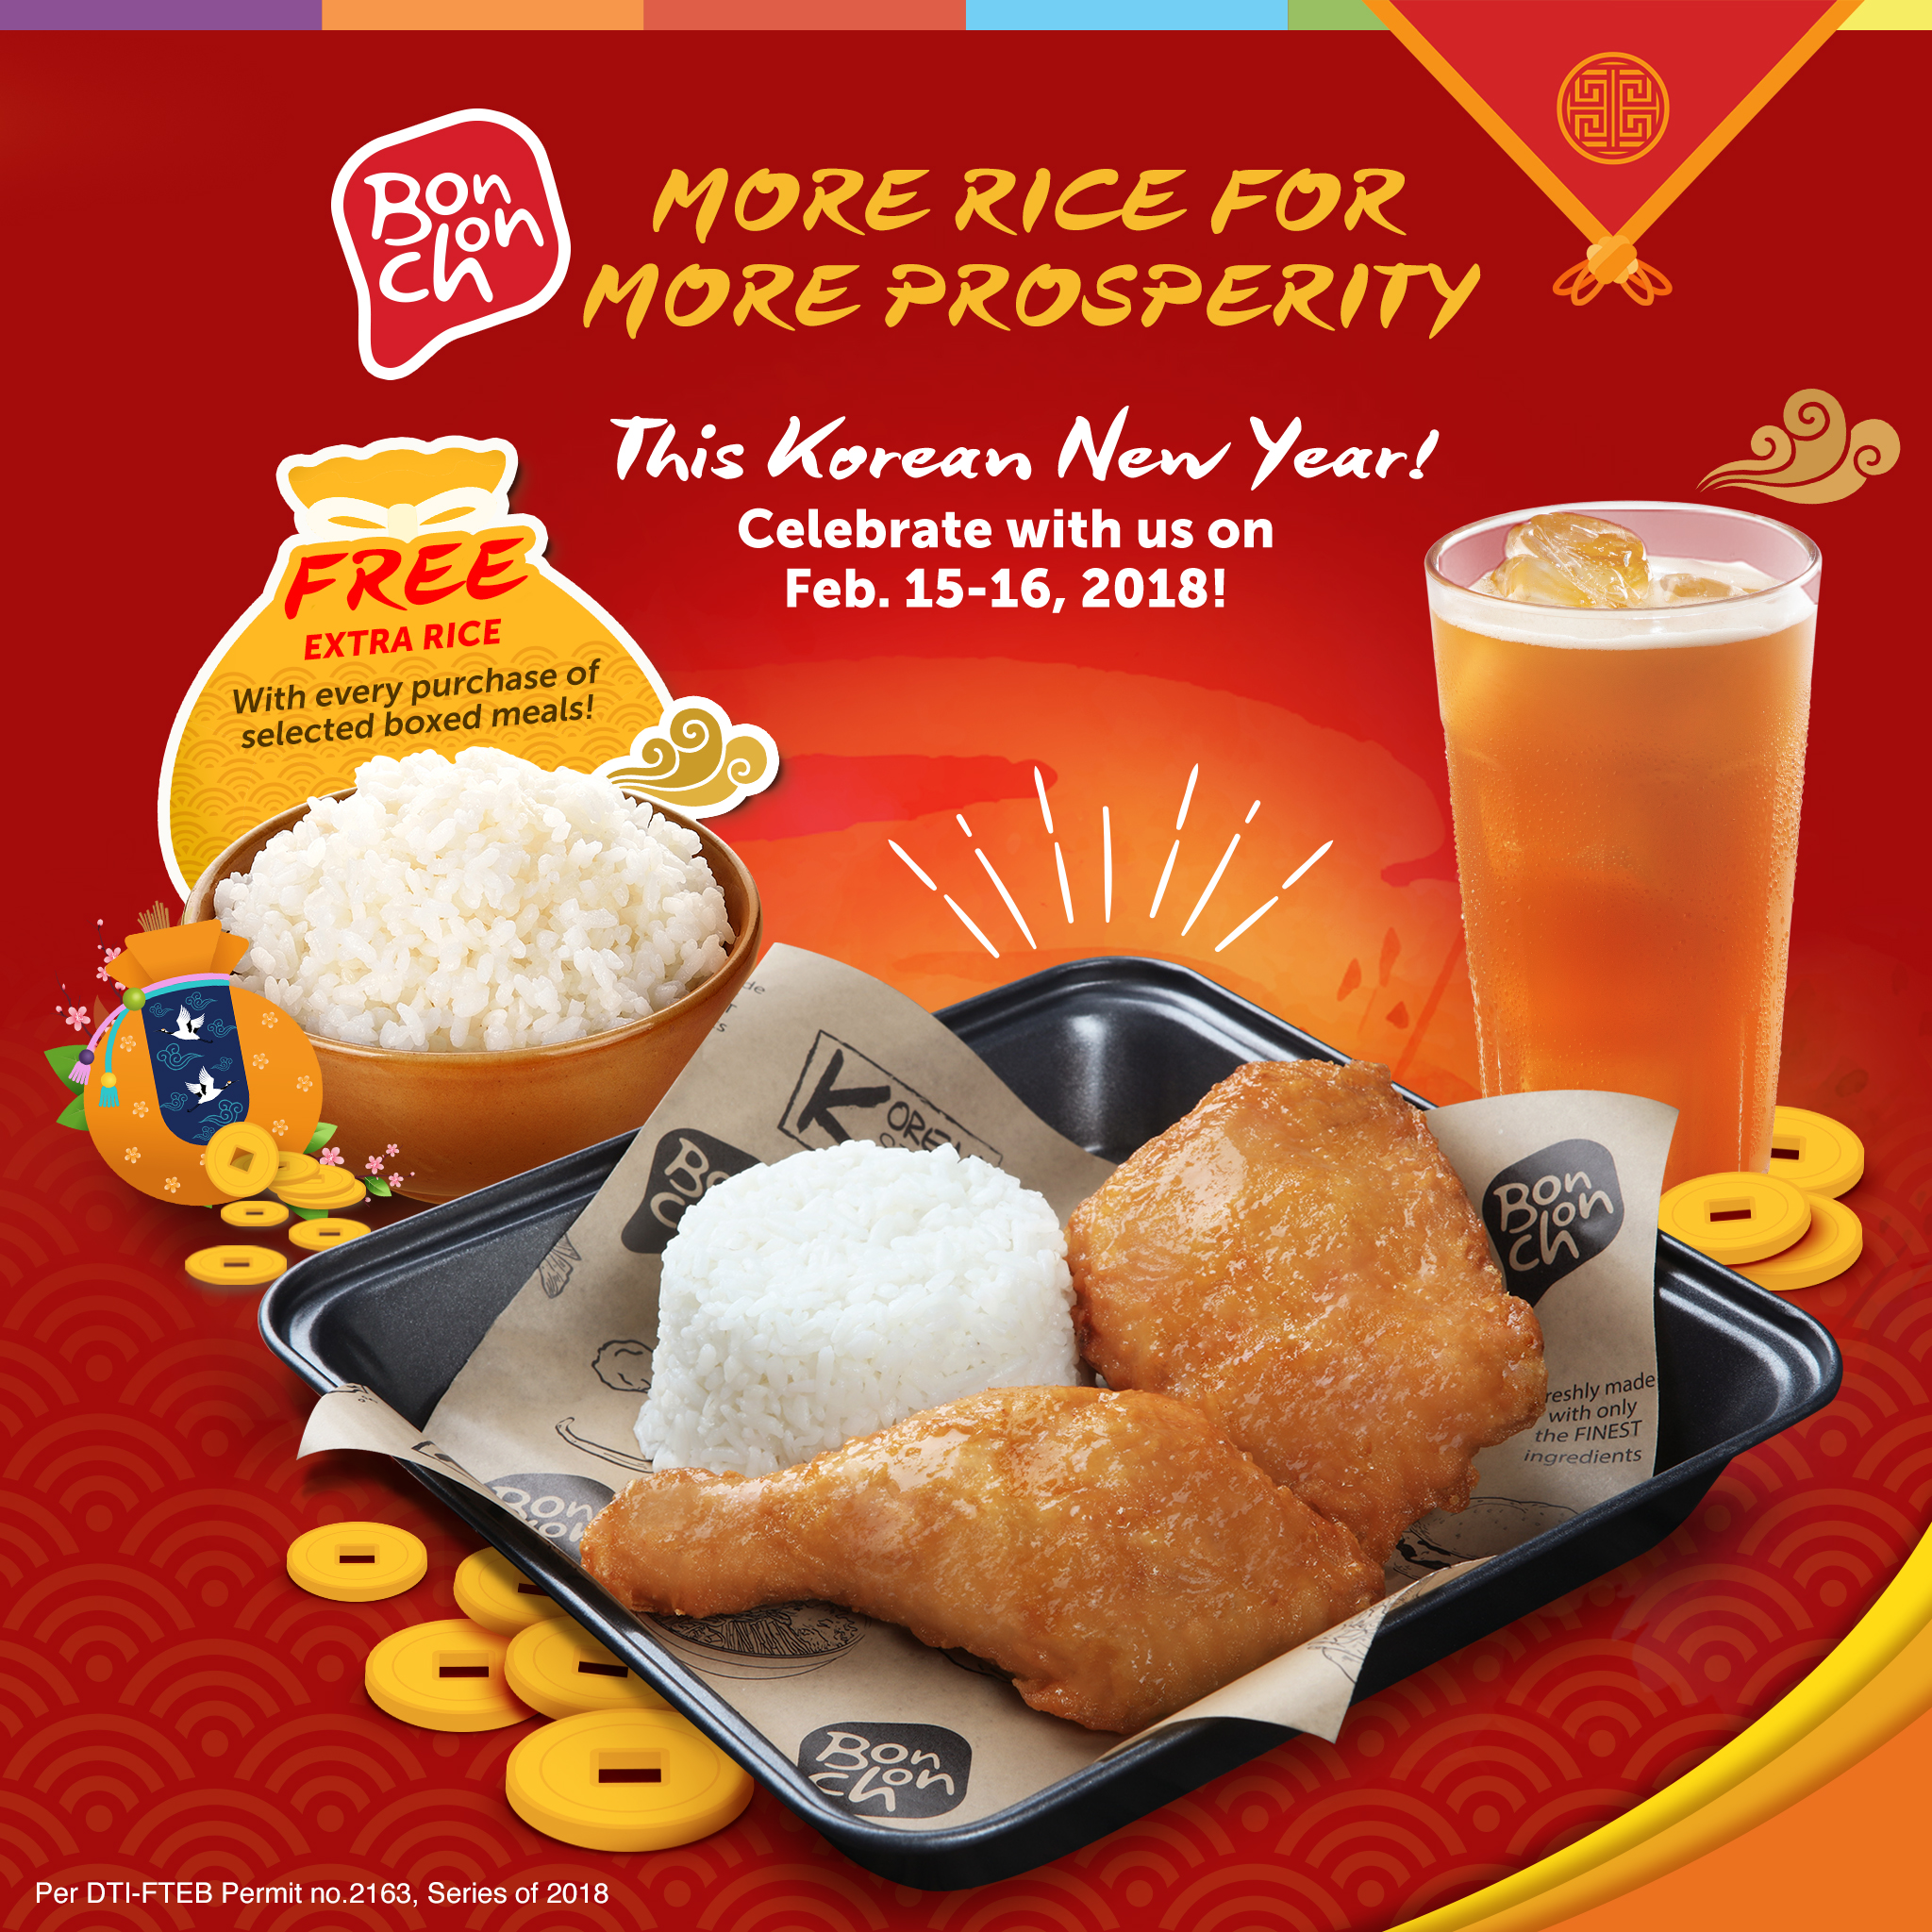 Latest Korean News Bonchon Korean New Year Promo Bonchon